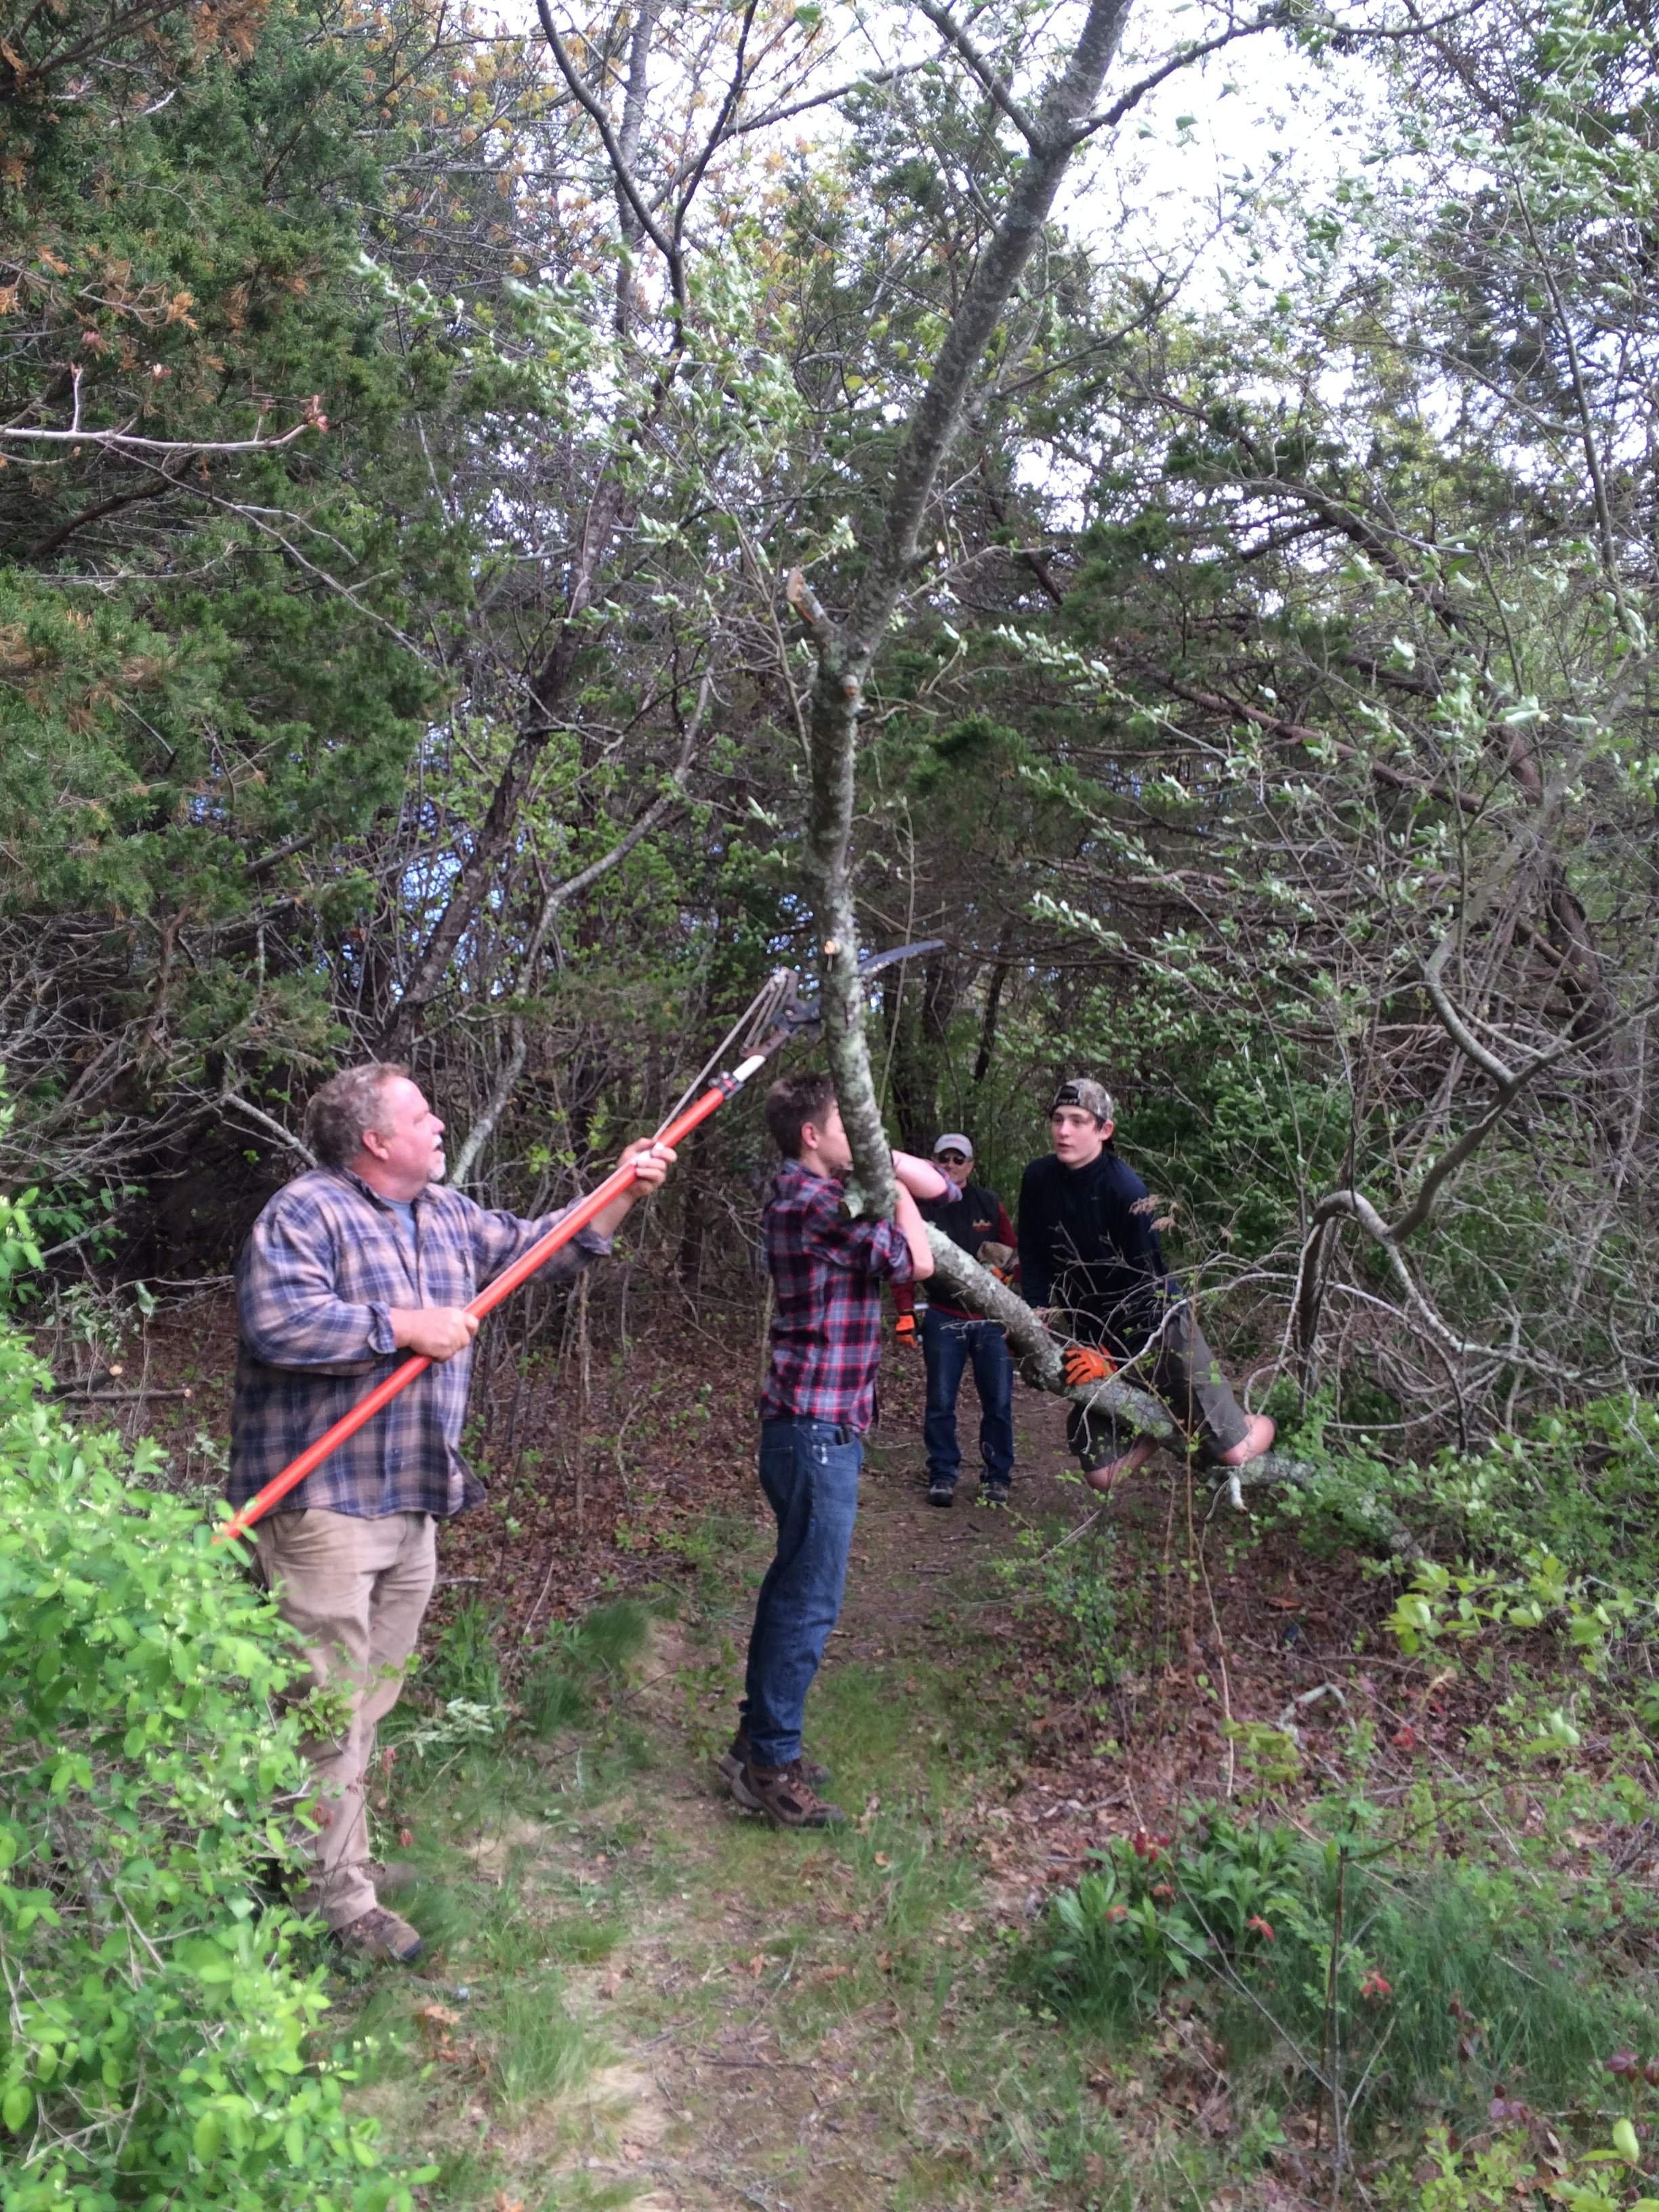 EAGLE PROJECT, ALTON JONES, No 1856, Large Branch Clearing, July 4, 2016.JPG